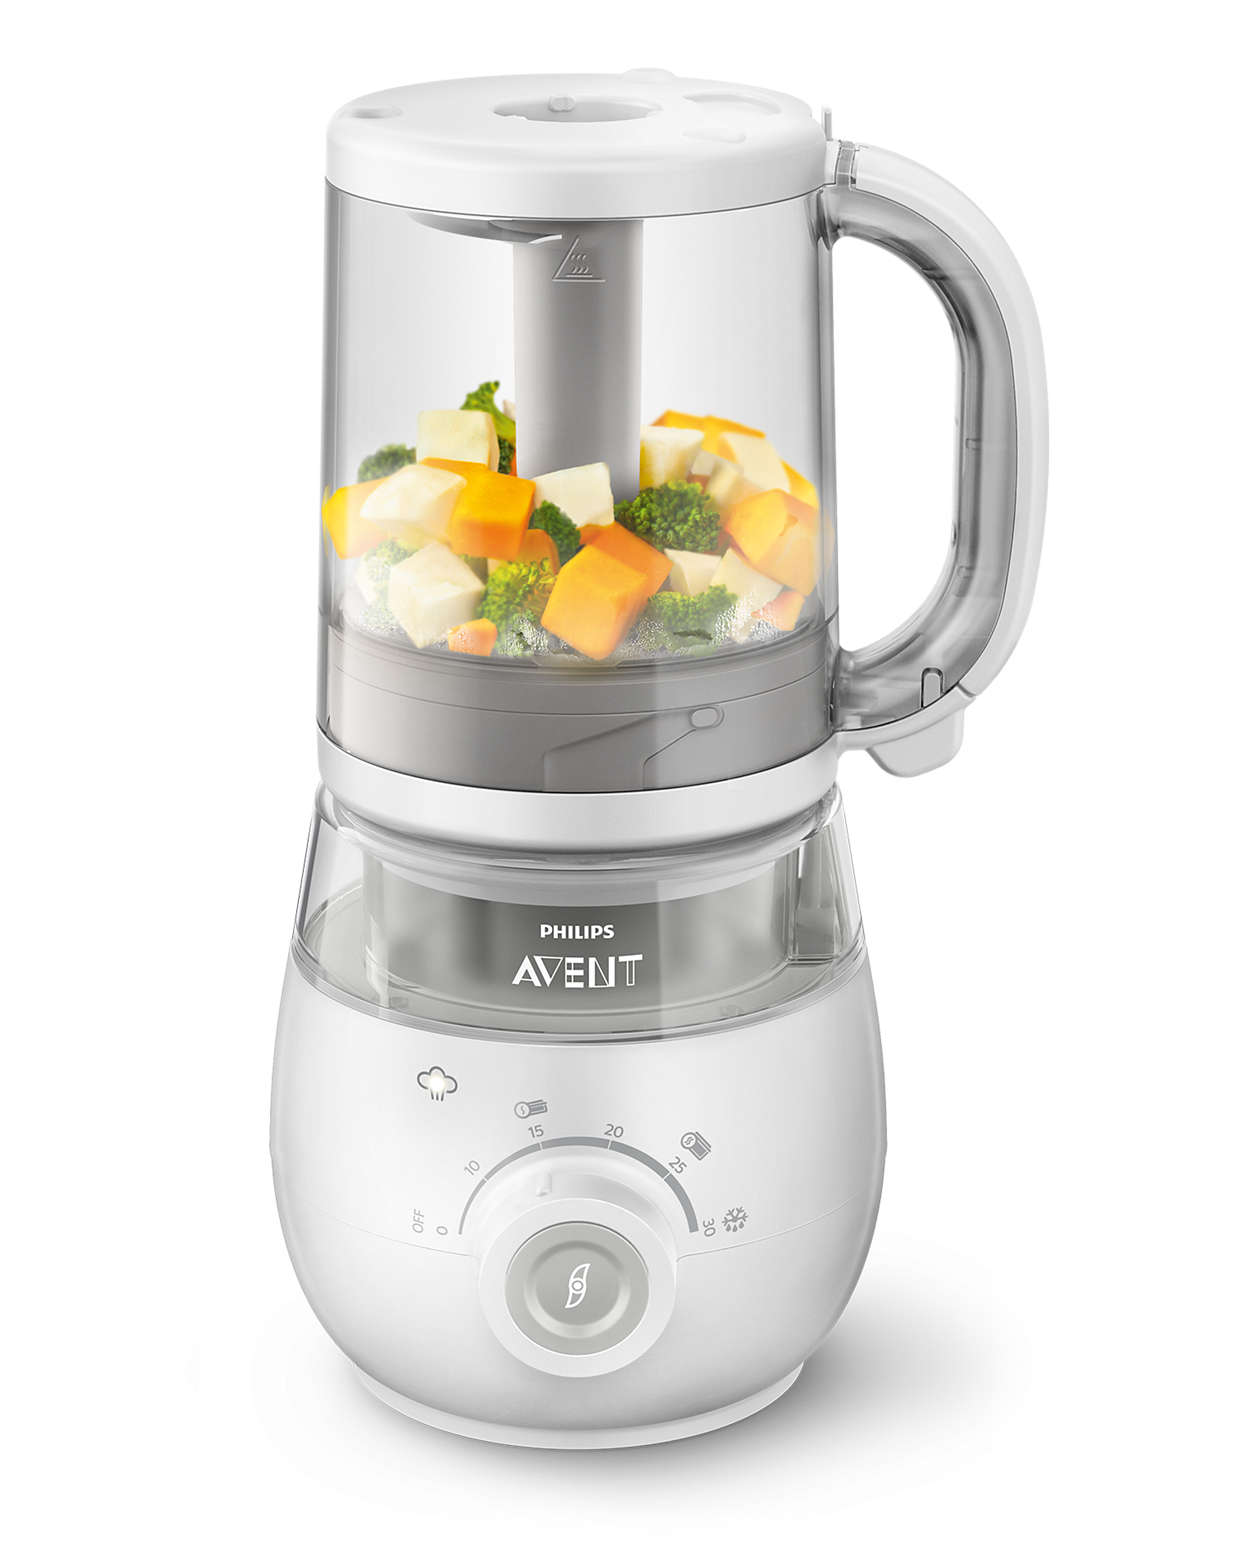 Philips Avent 4-in-1 Steamer & Blender